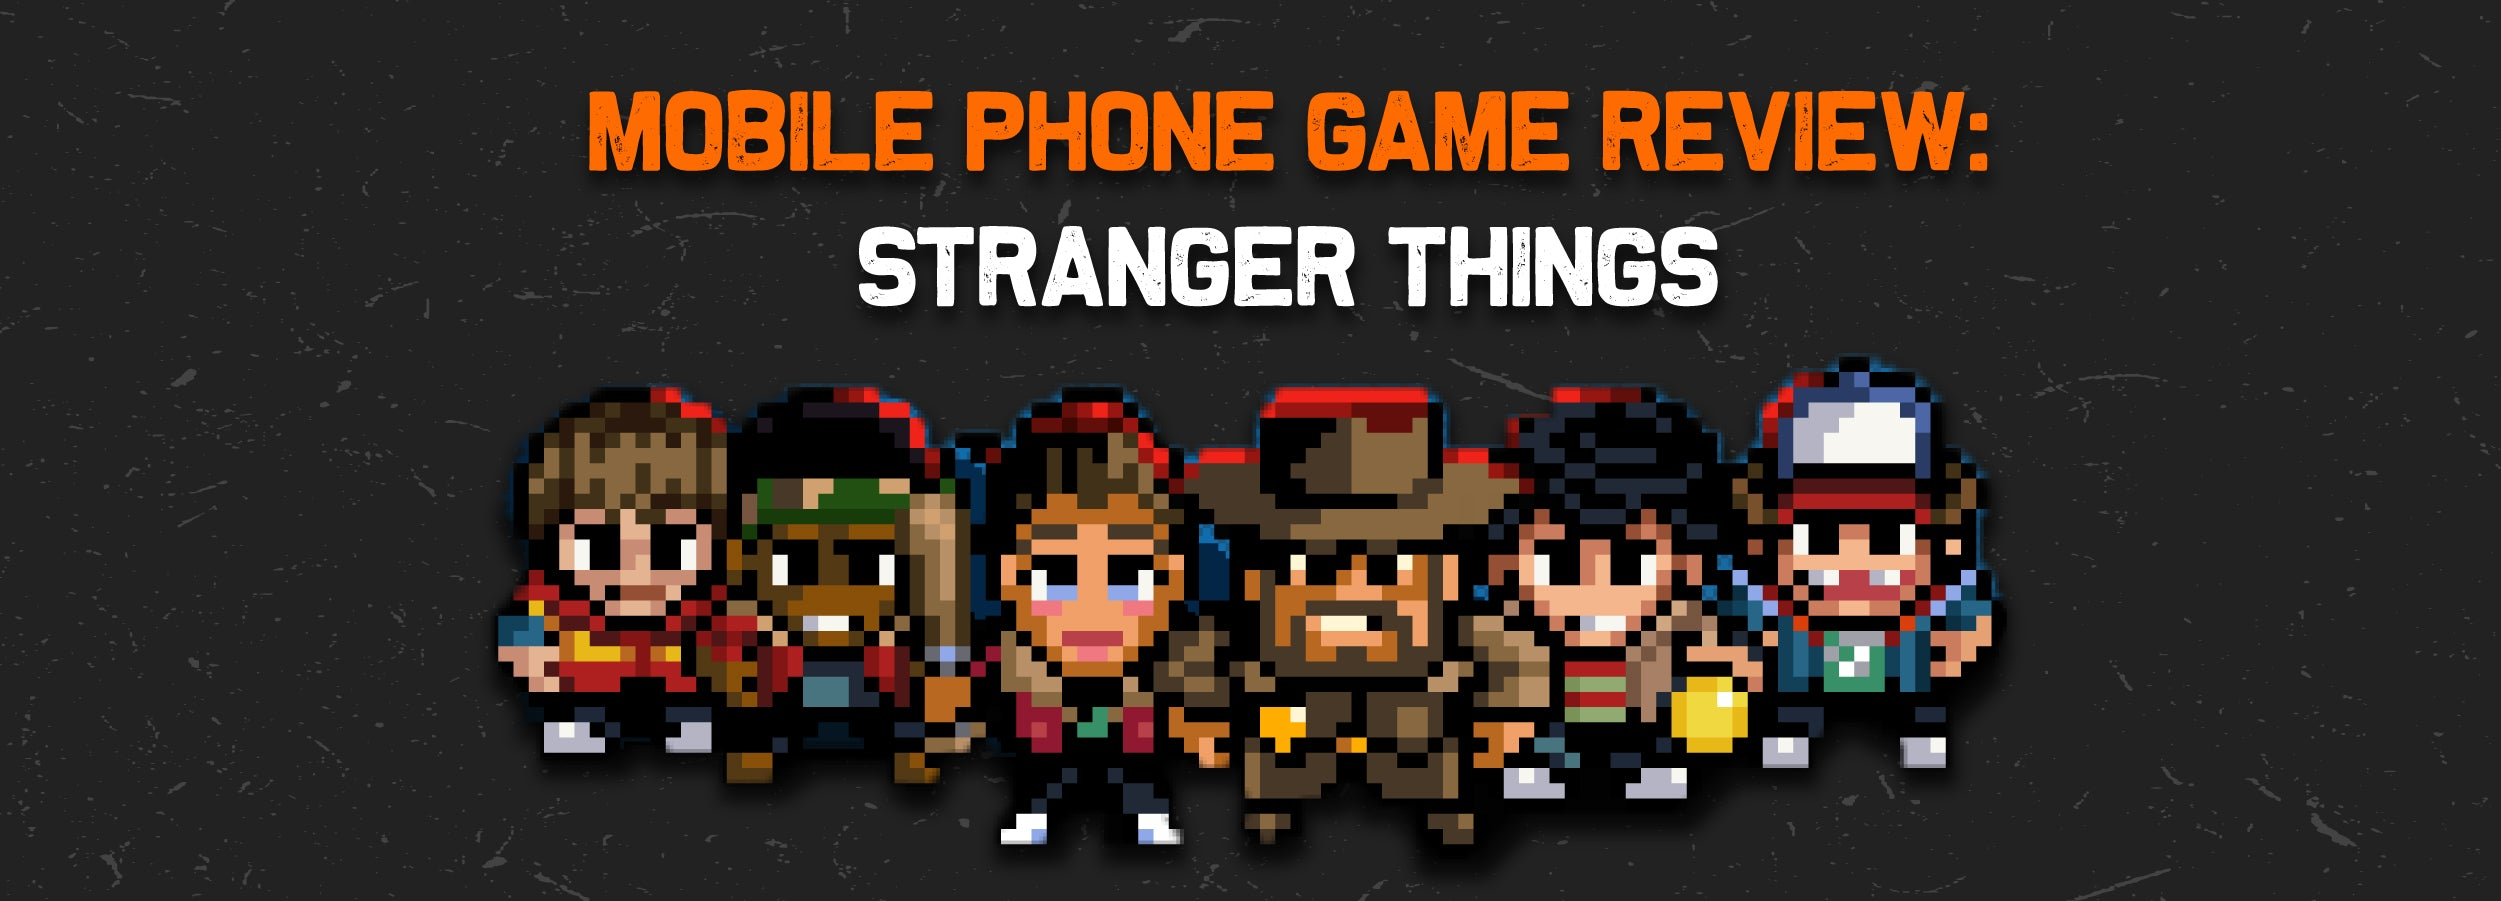 Mobile Phone Game Review: Stranger Things